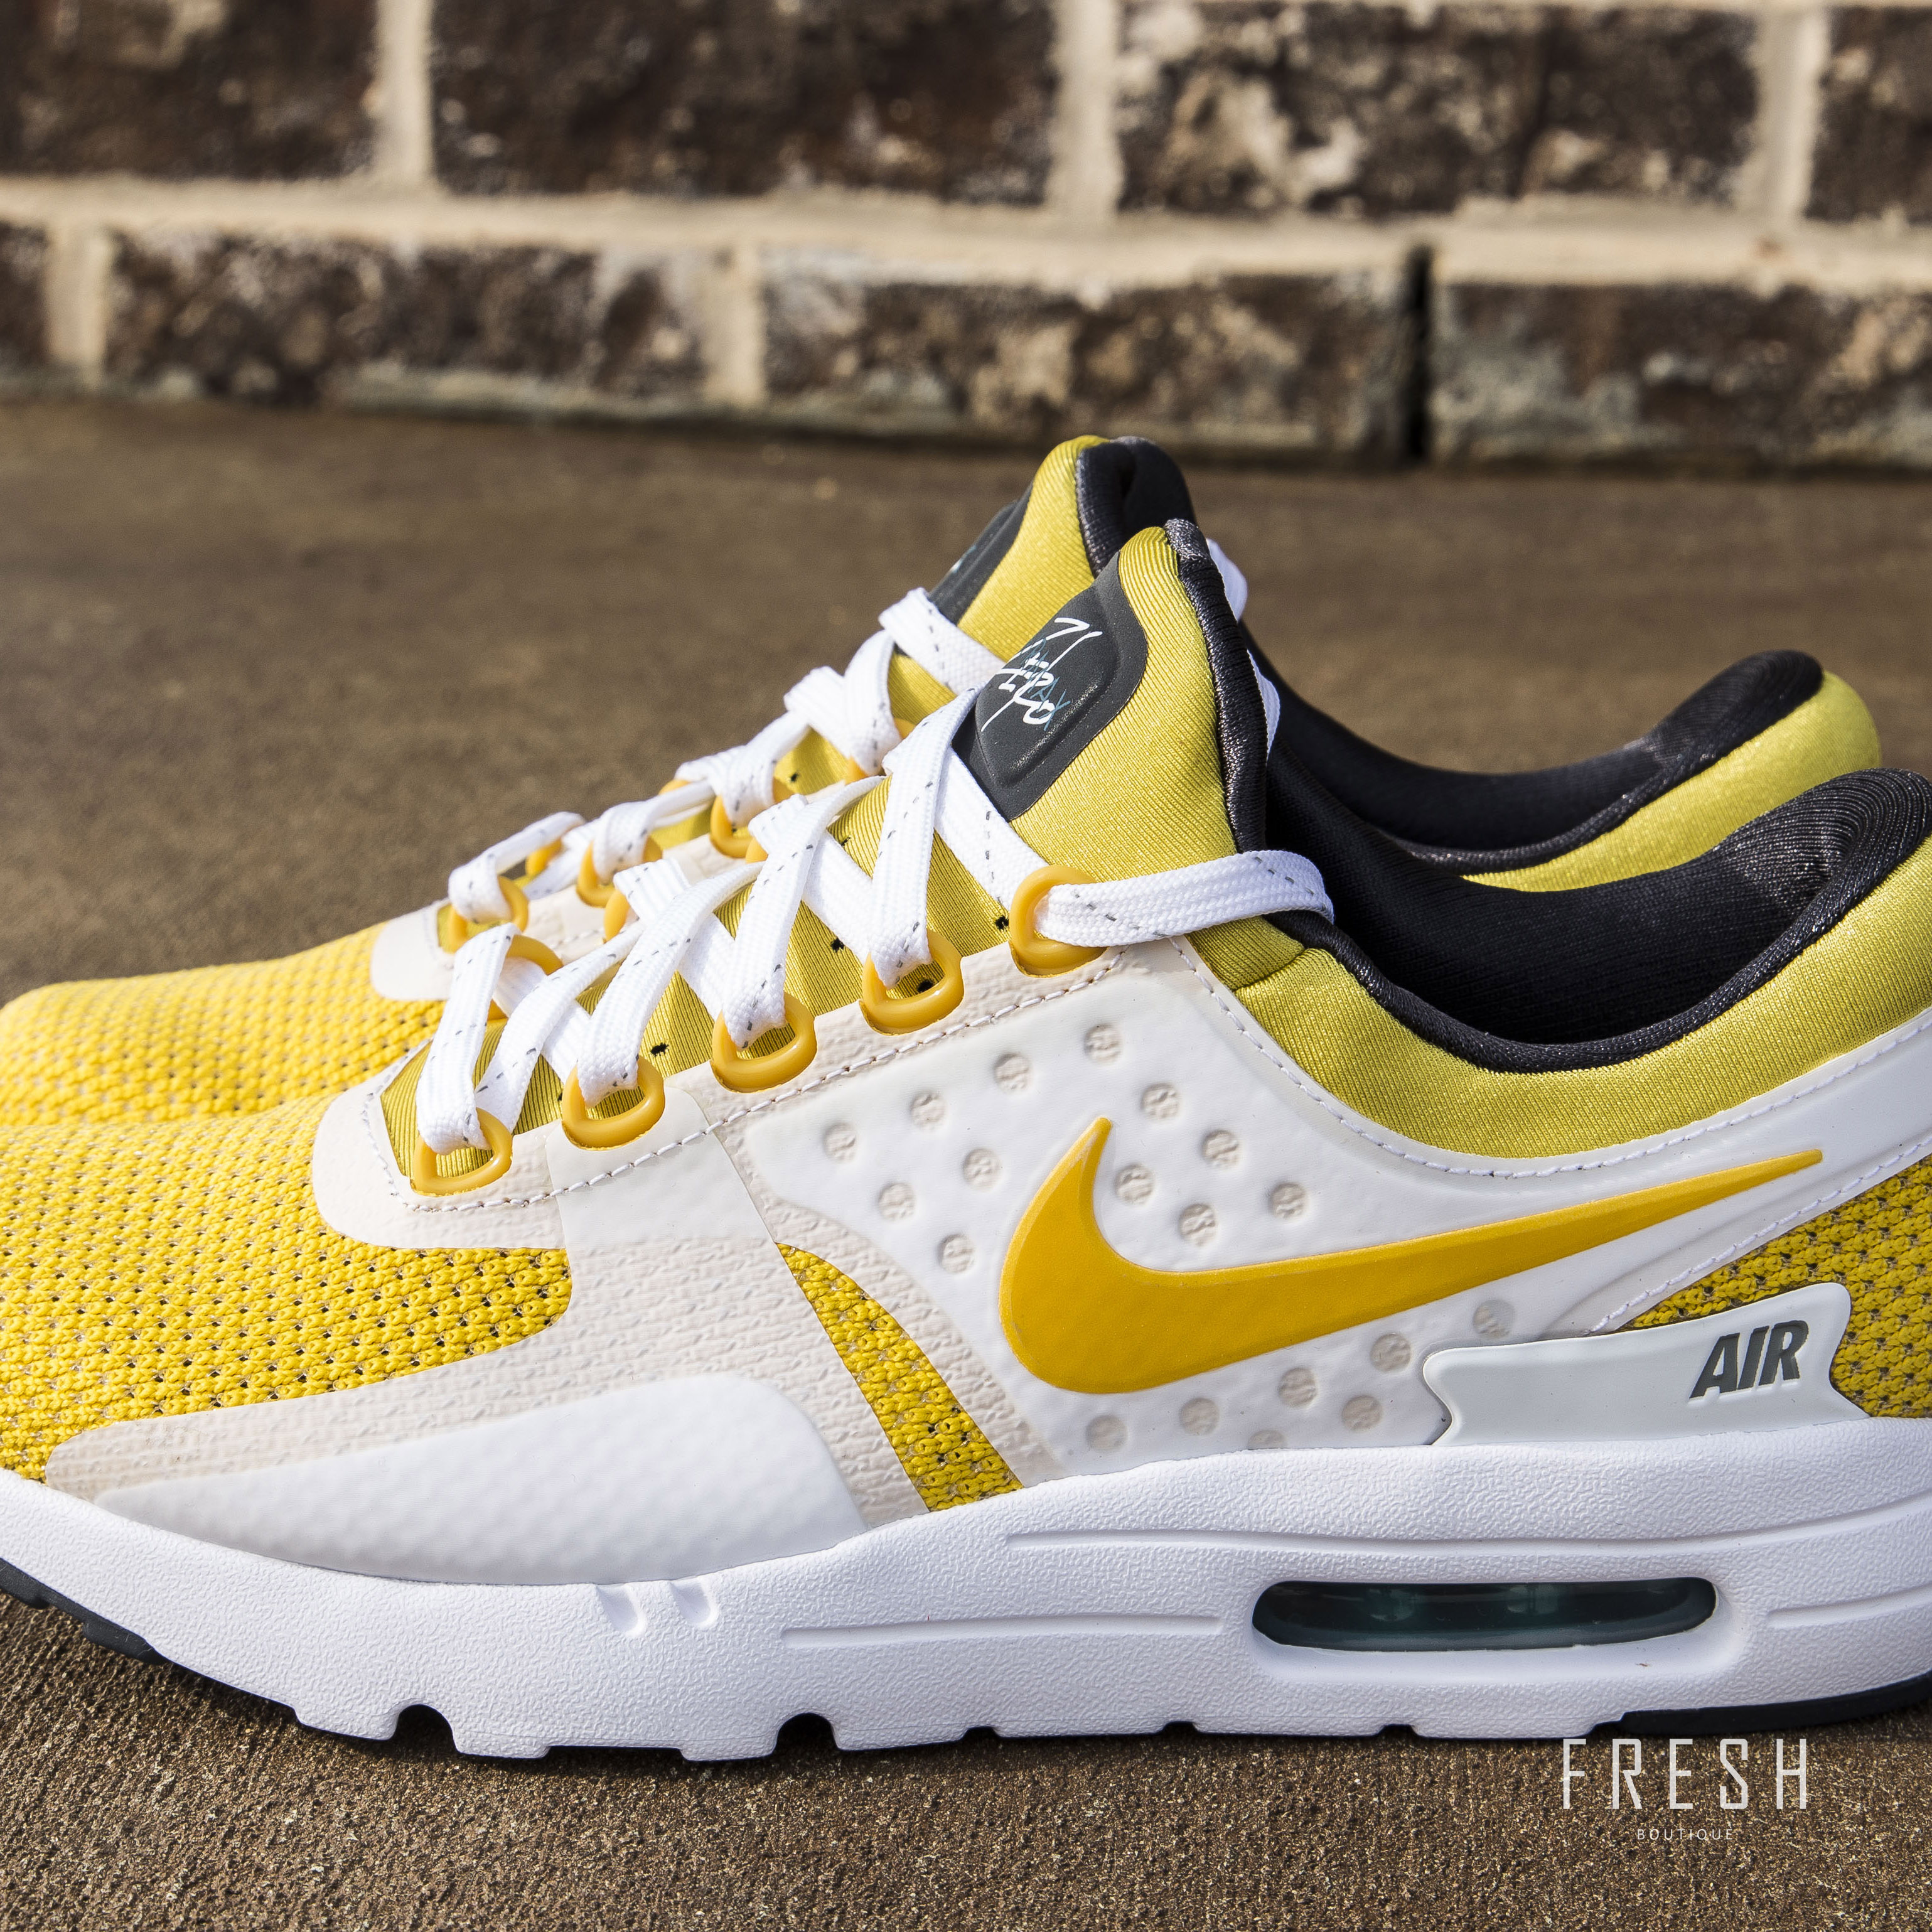 new product 93503 8256b Fresh Sneaker Boutique | Nike Air Max Zero QS - White/Sulfur ...